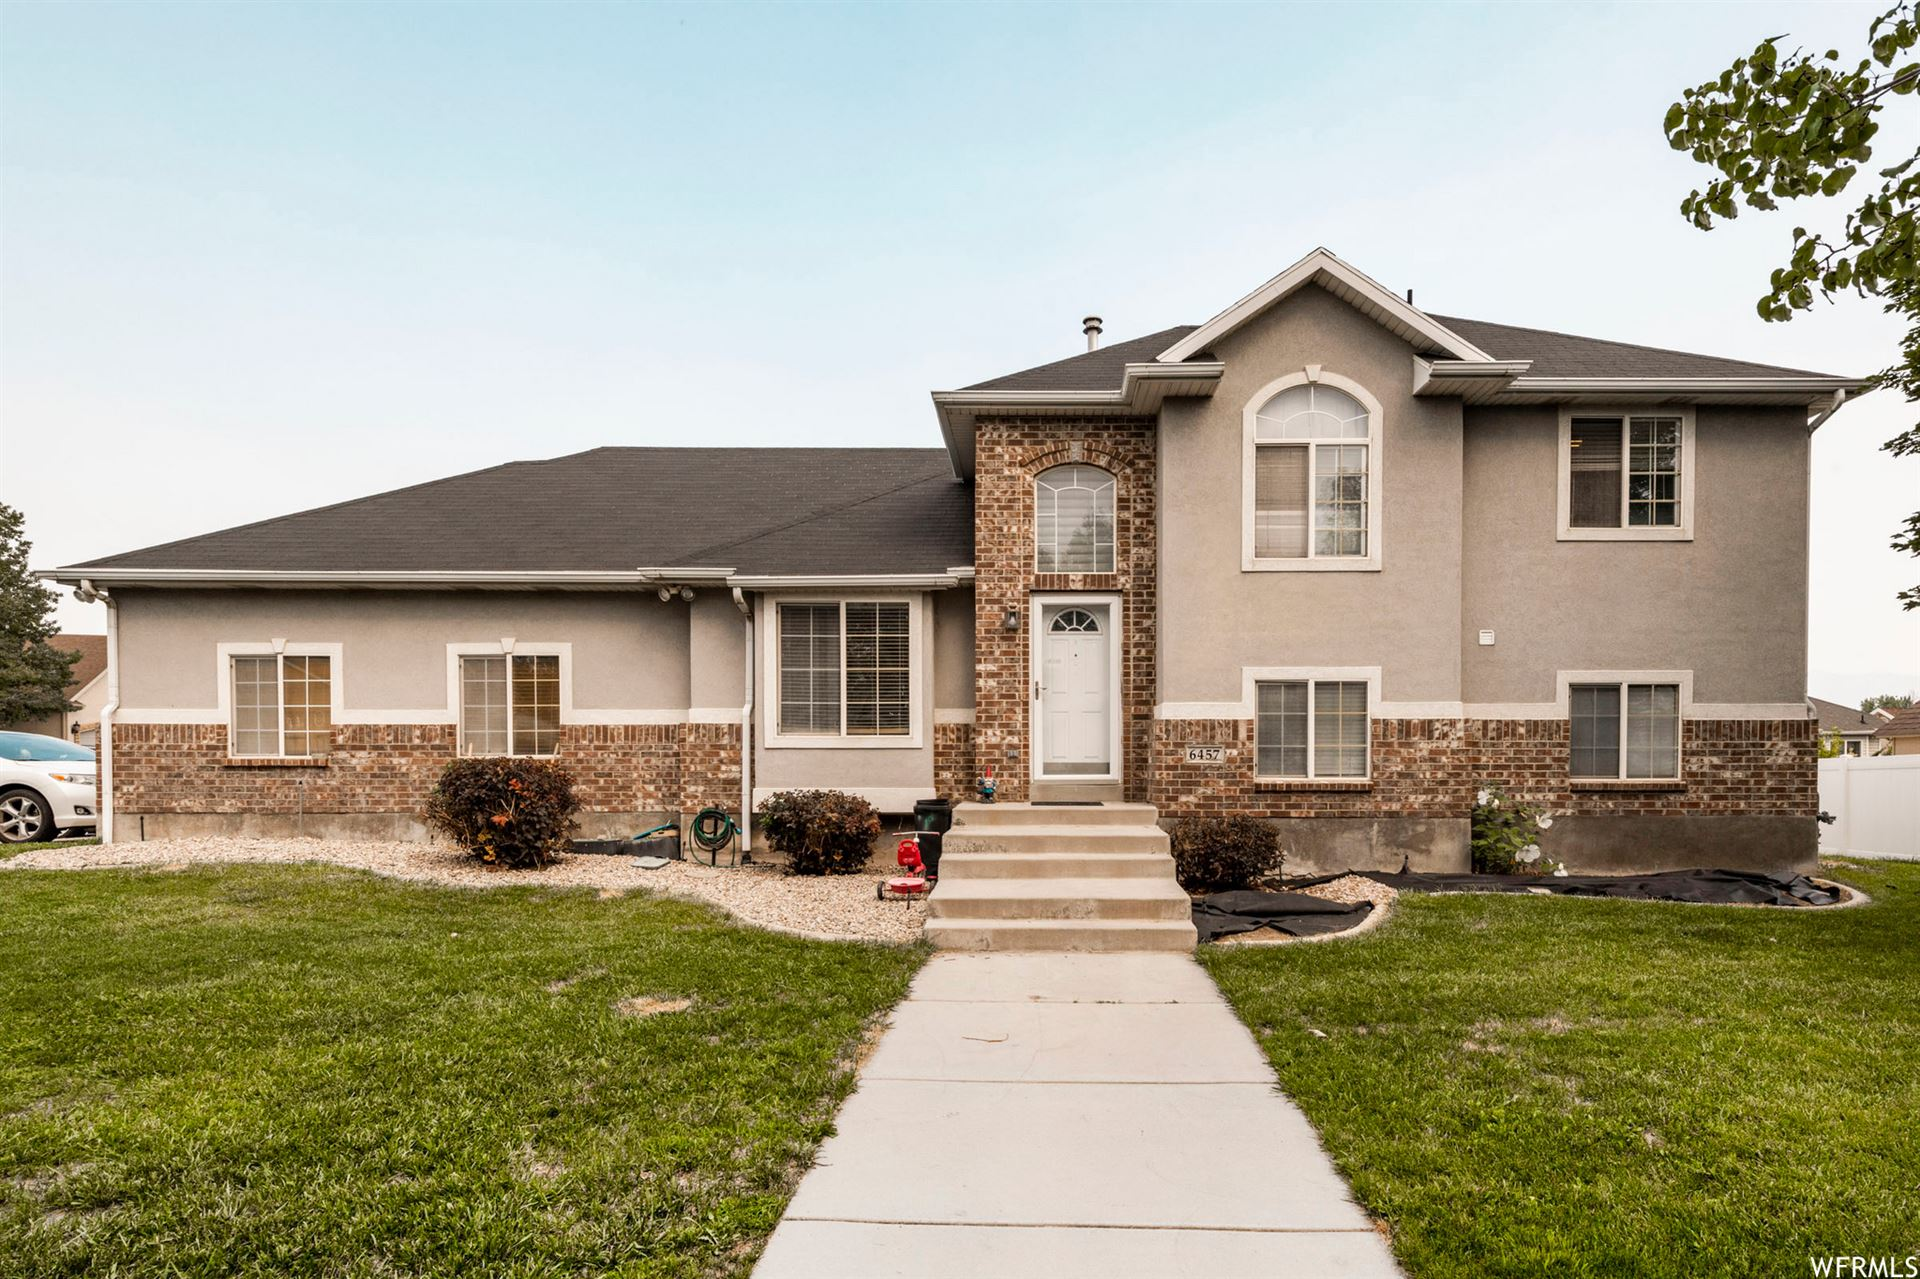 Photo of 6457 S GOLD MEDAL W DR, Taylorsville, UT 84129 (MLS # 1767126)